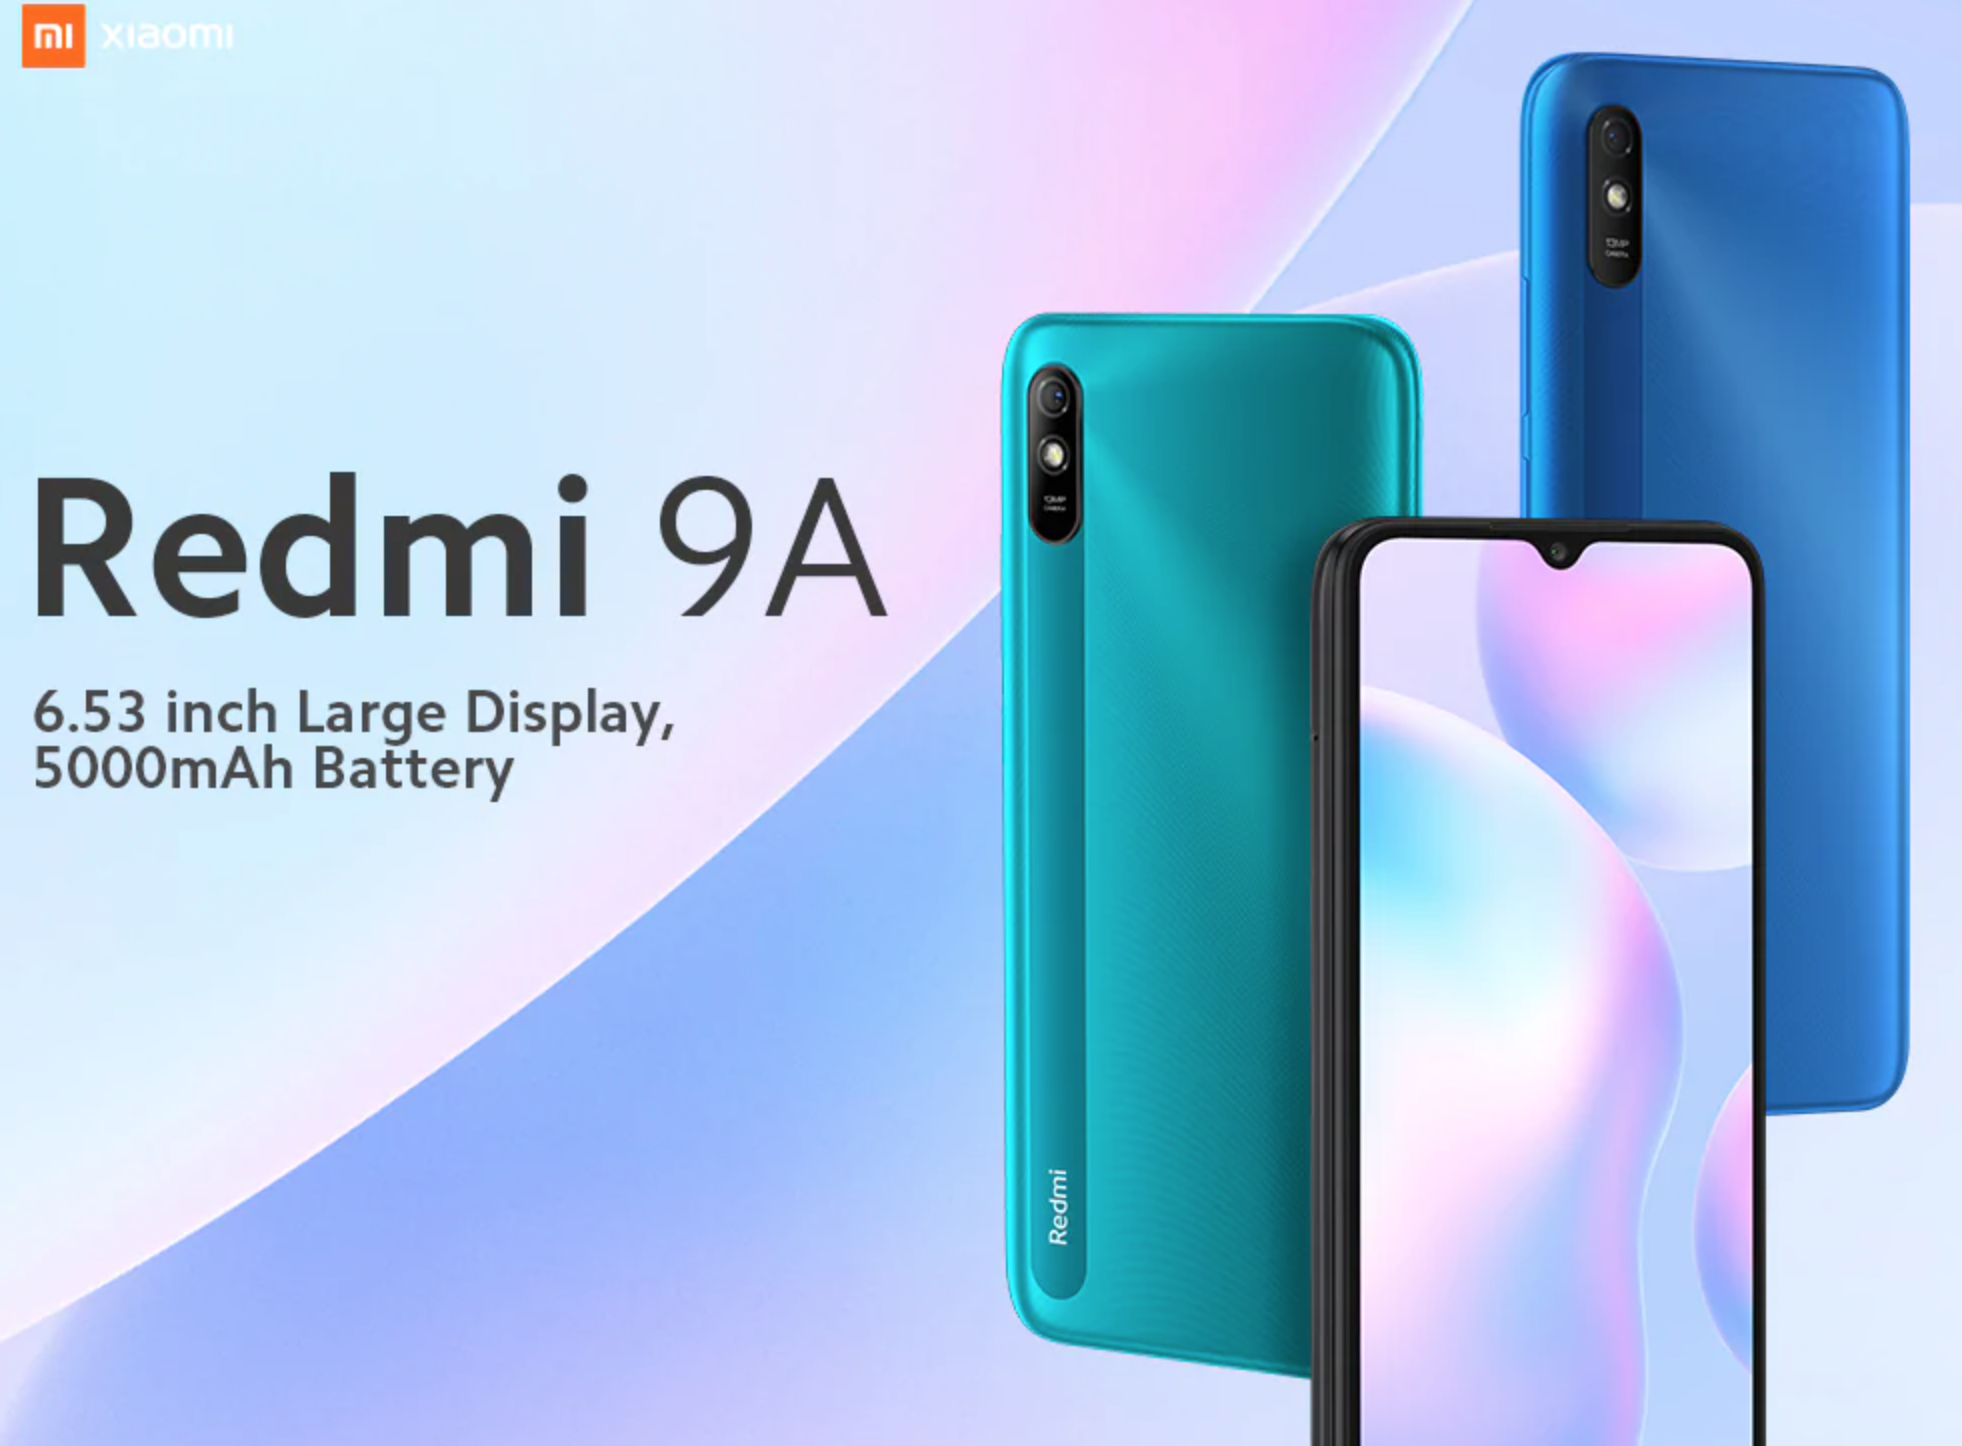 Xiaomi Redmi 9A Global Variant Is Out - Get It for Just $99